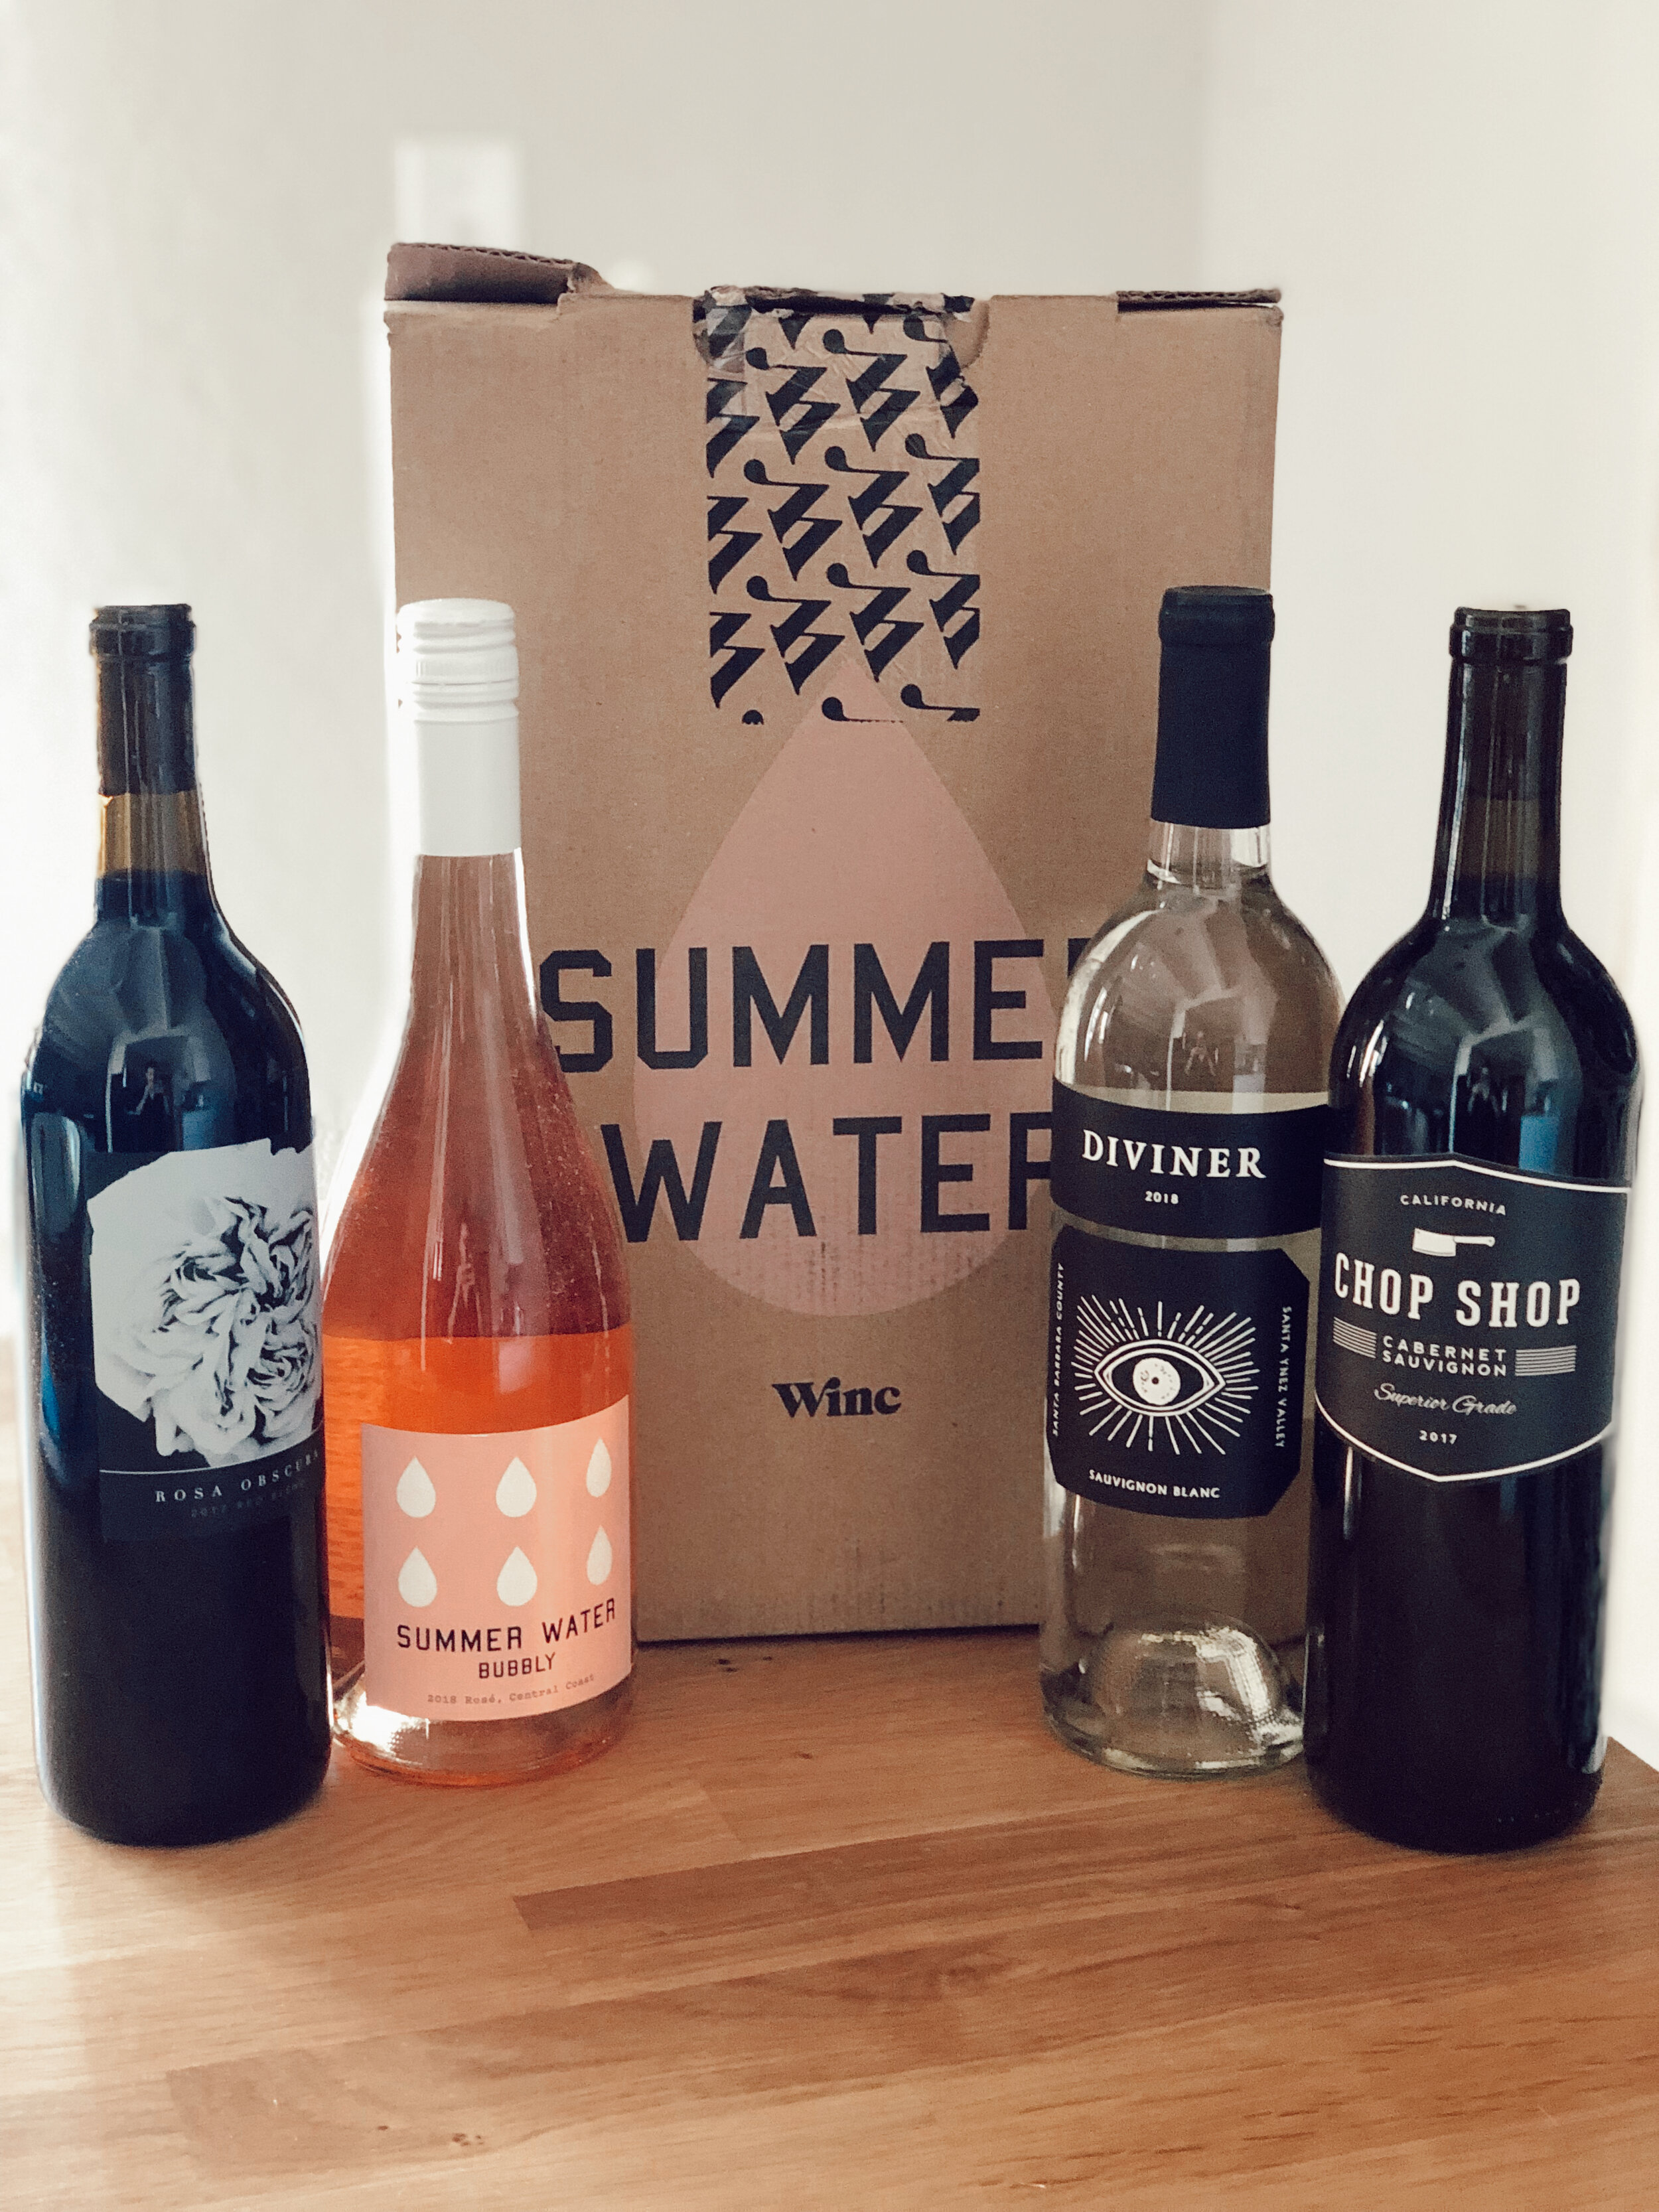 My first order of wines.